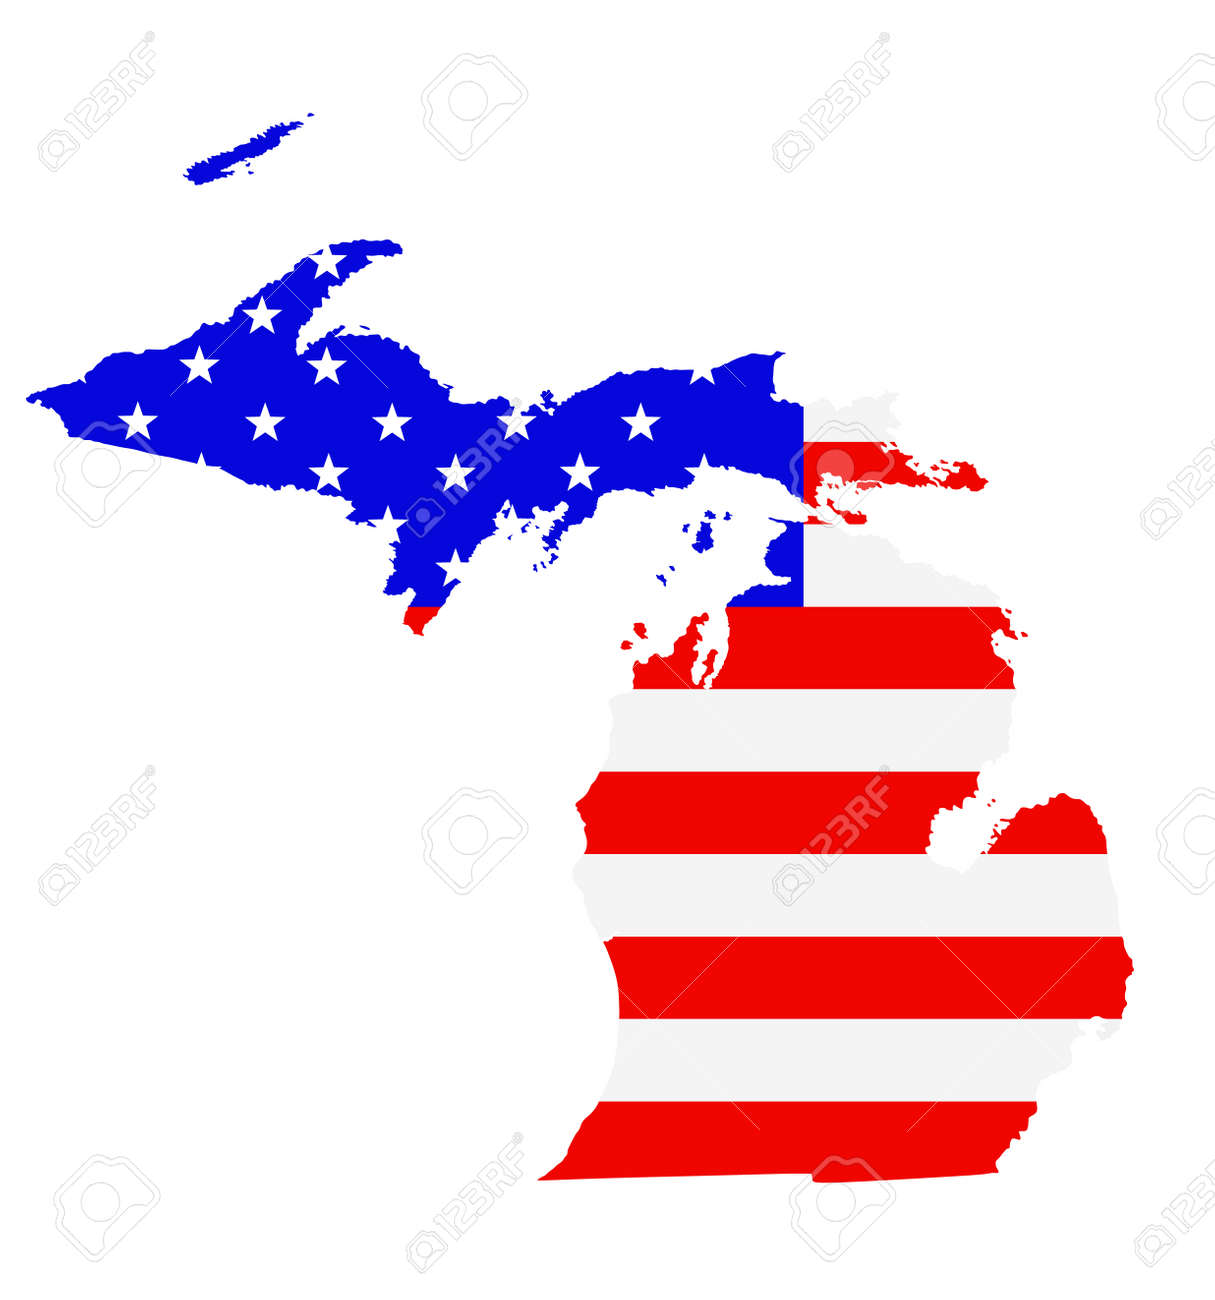 Michigan state map vector silhouette illustration. United States of America flag over Michigan map. USA, American national symbol of pride and patriotism. Vote election campaign banner. - 172749406